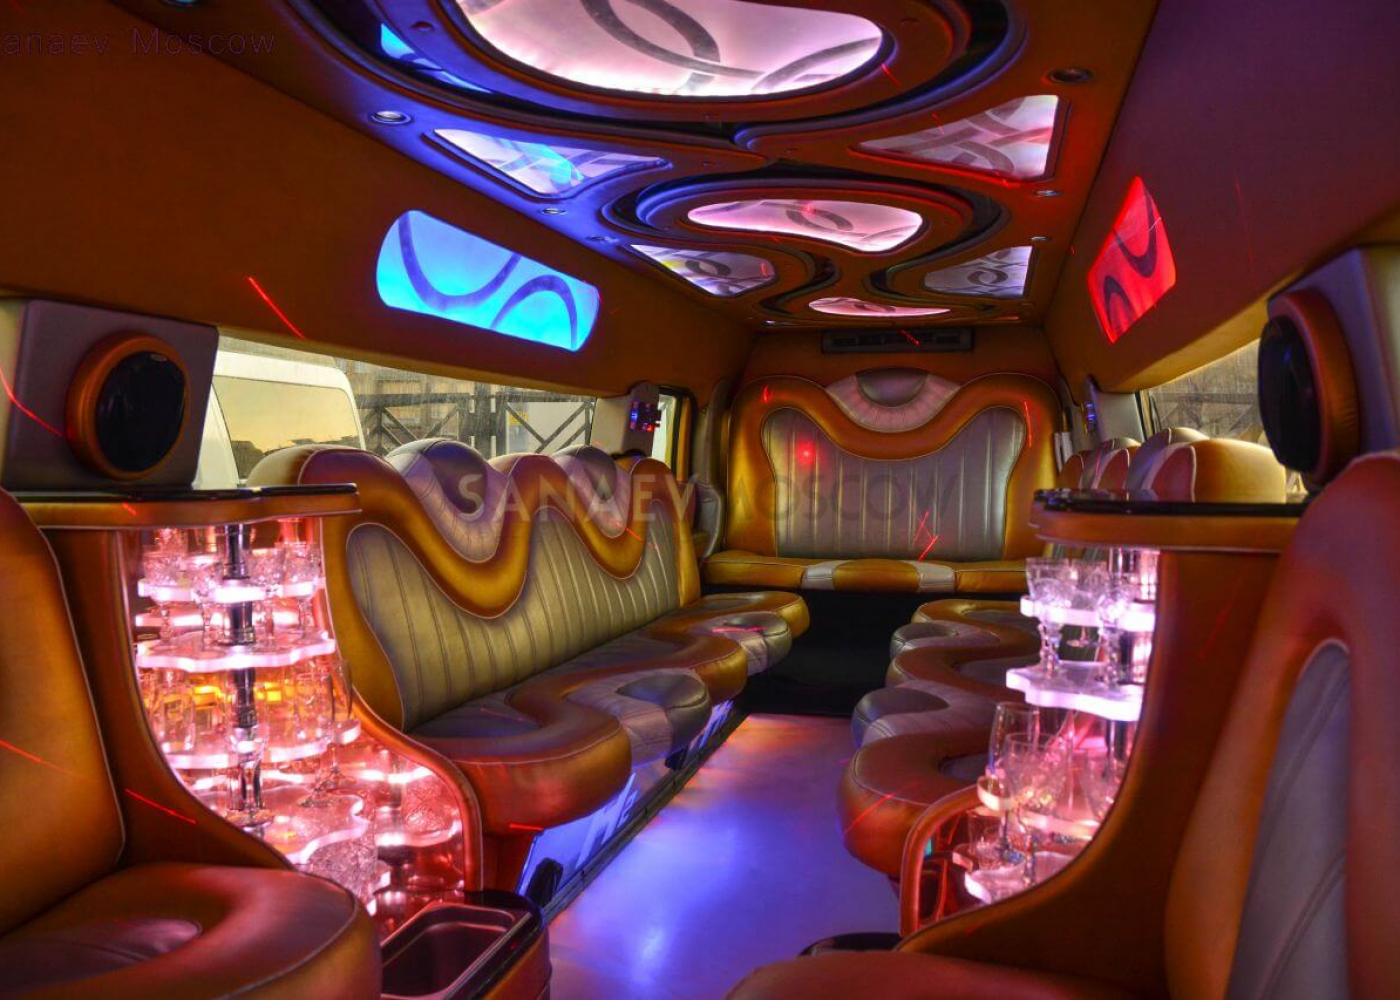 new-limo--sanaevmoscow-all-0010.jpg